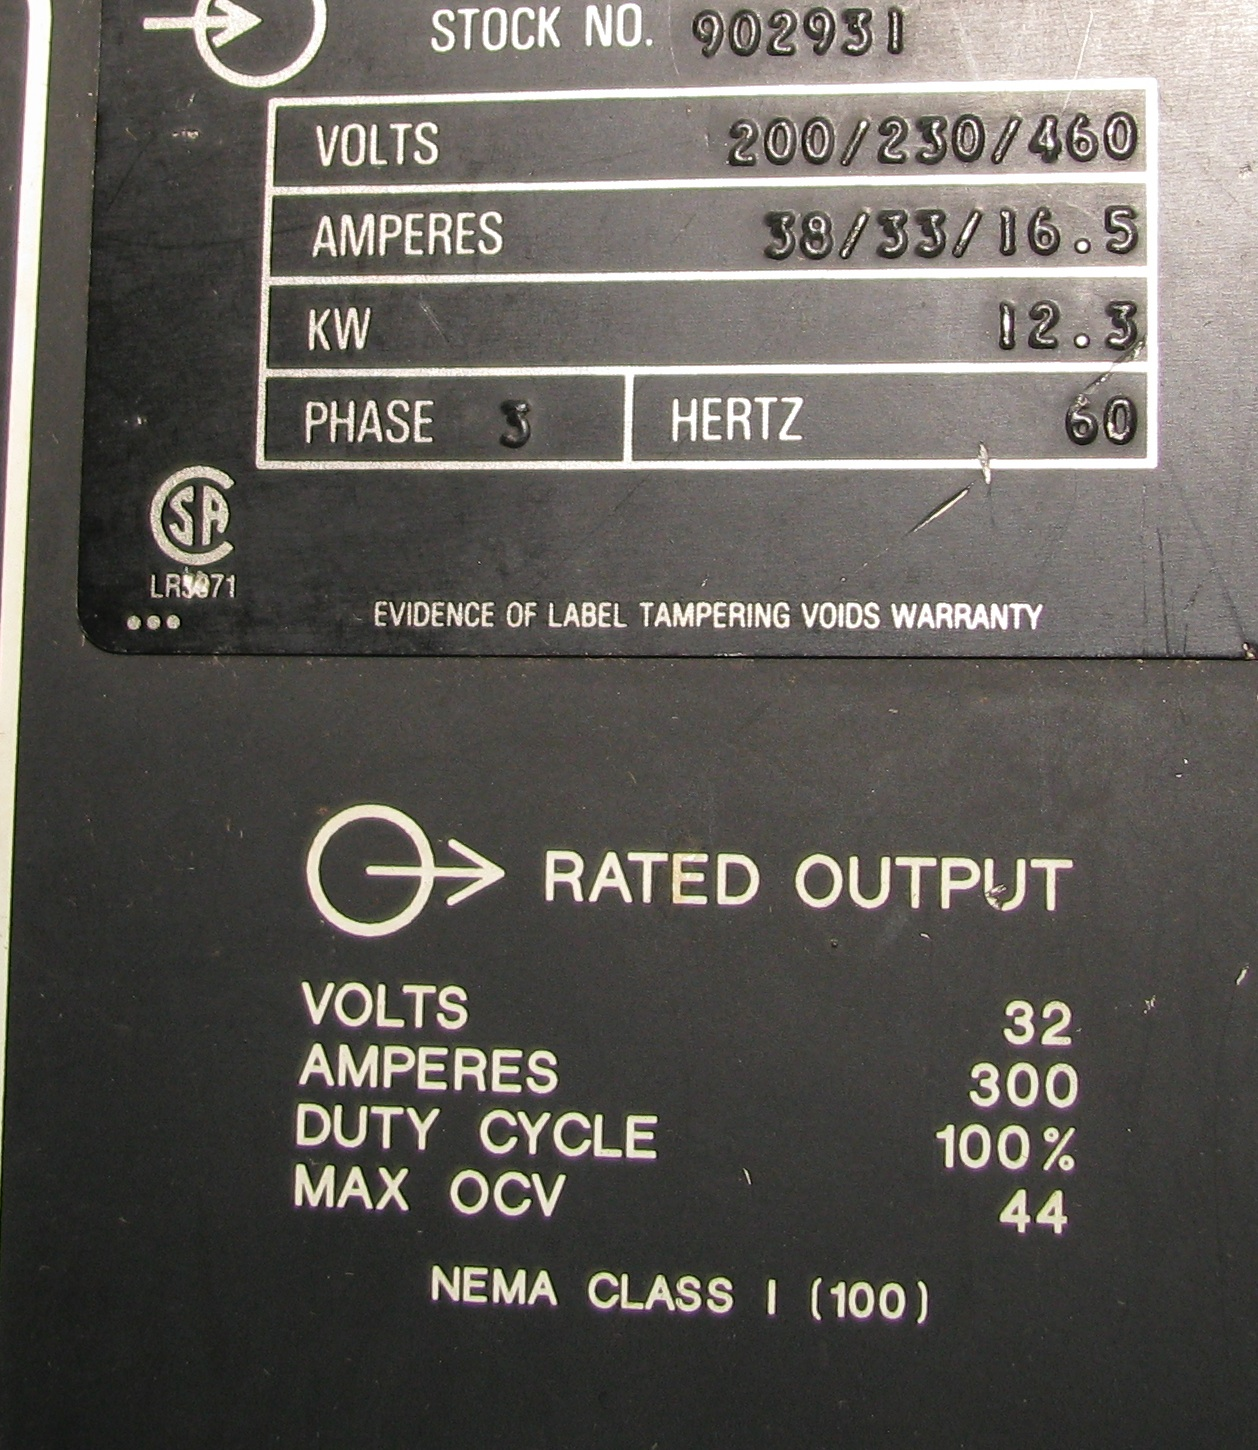 Here Is My Machine Please Note The Face Plate Specifications And Haas Wiring Diagram Faceplate 5886